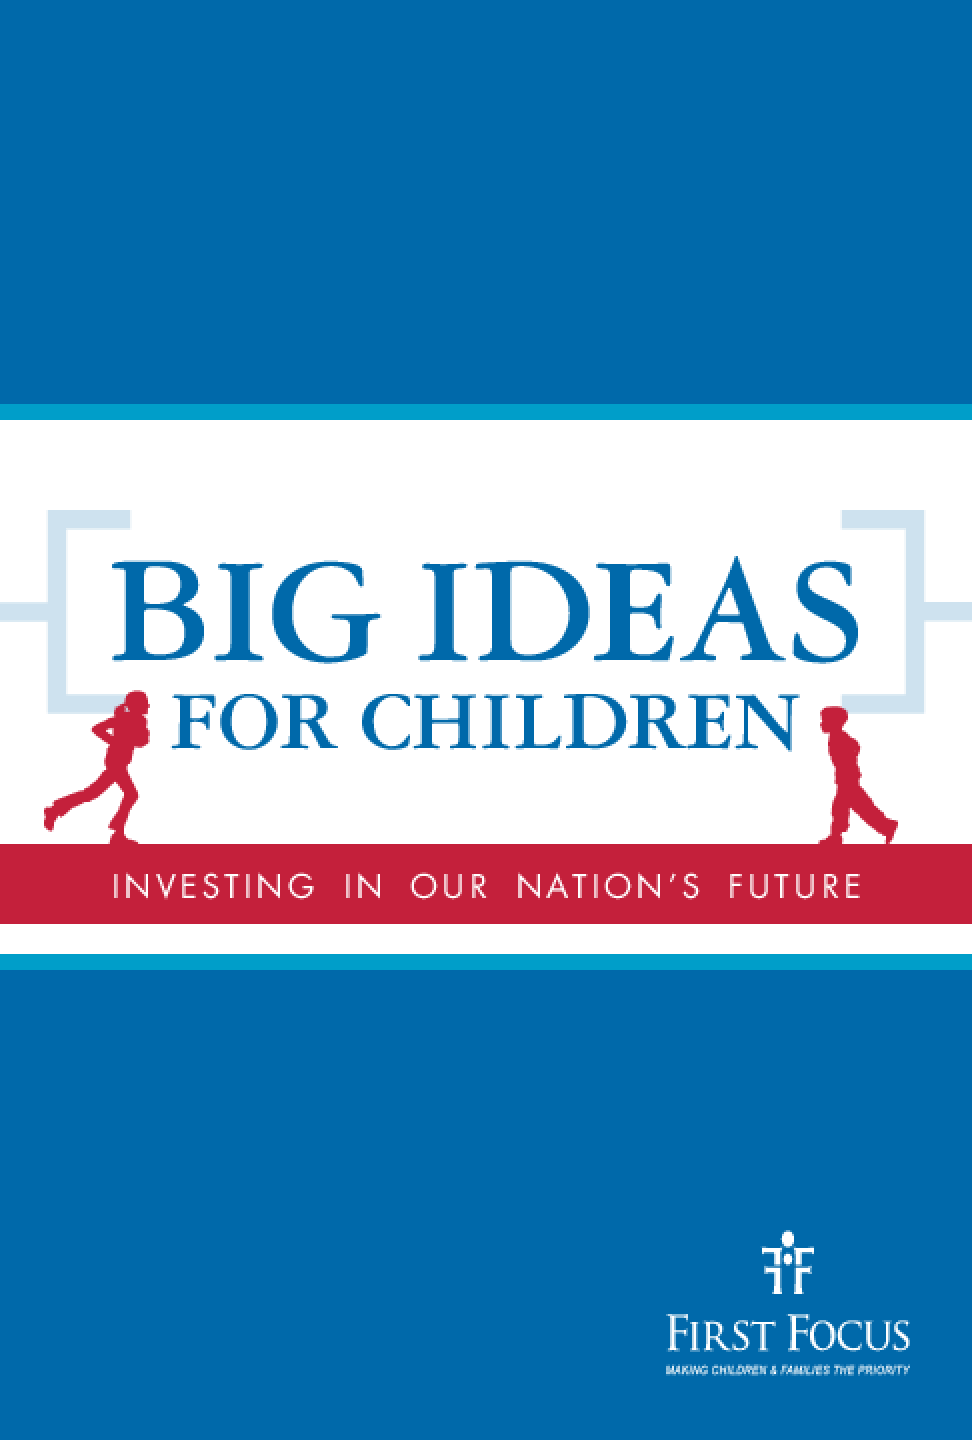 Big Ideas for Children: Investing in Our Nation's Future